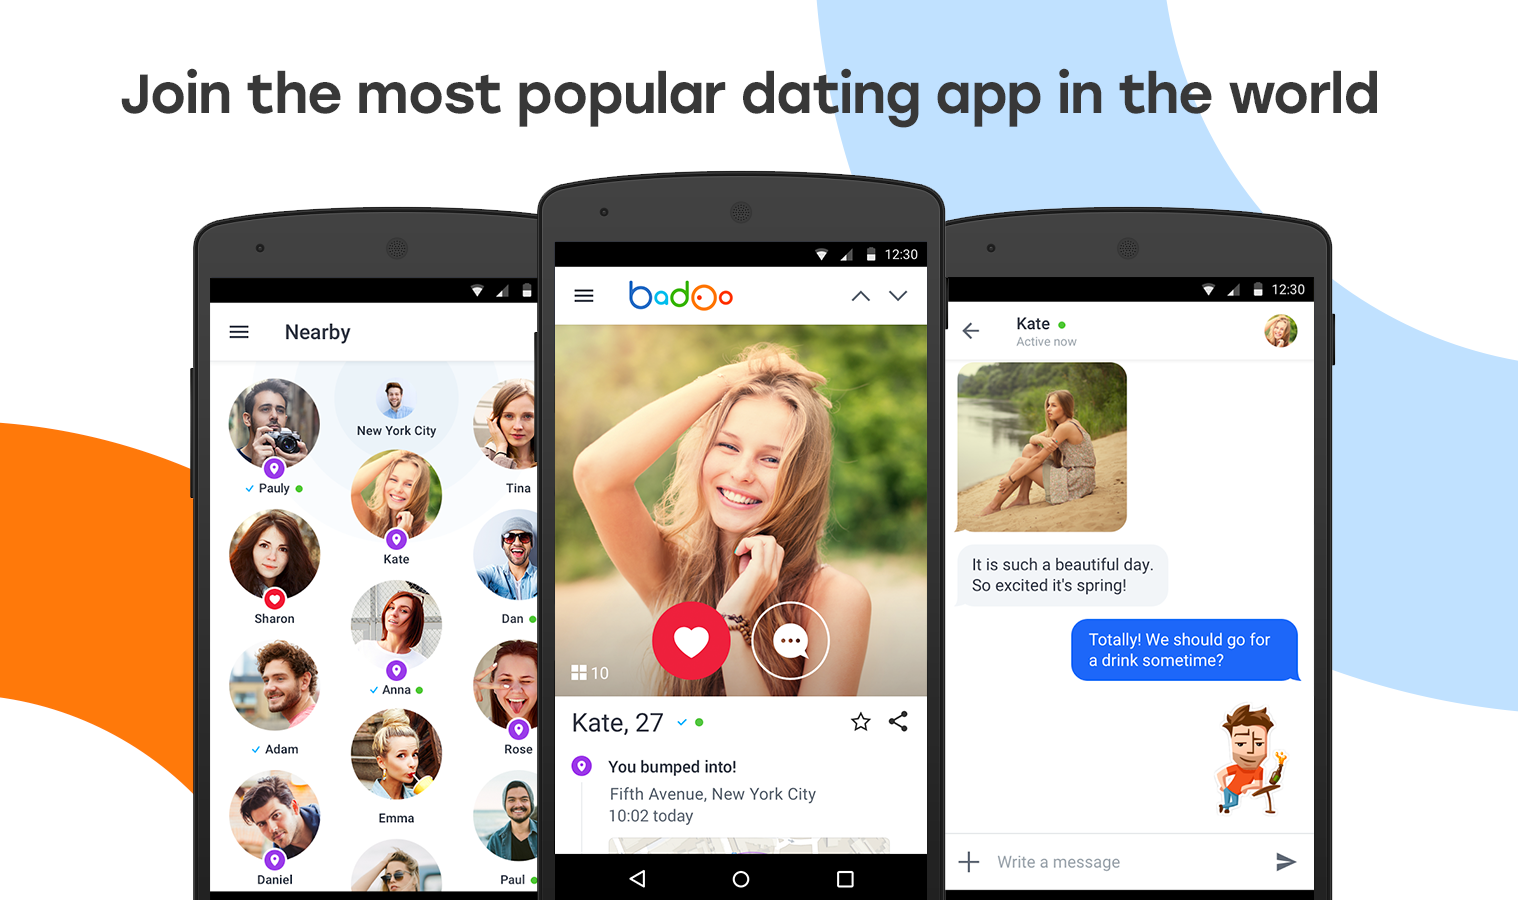 badoo dating site contact